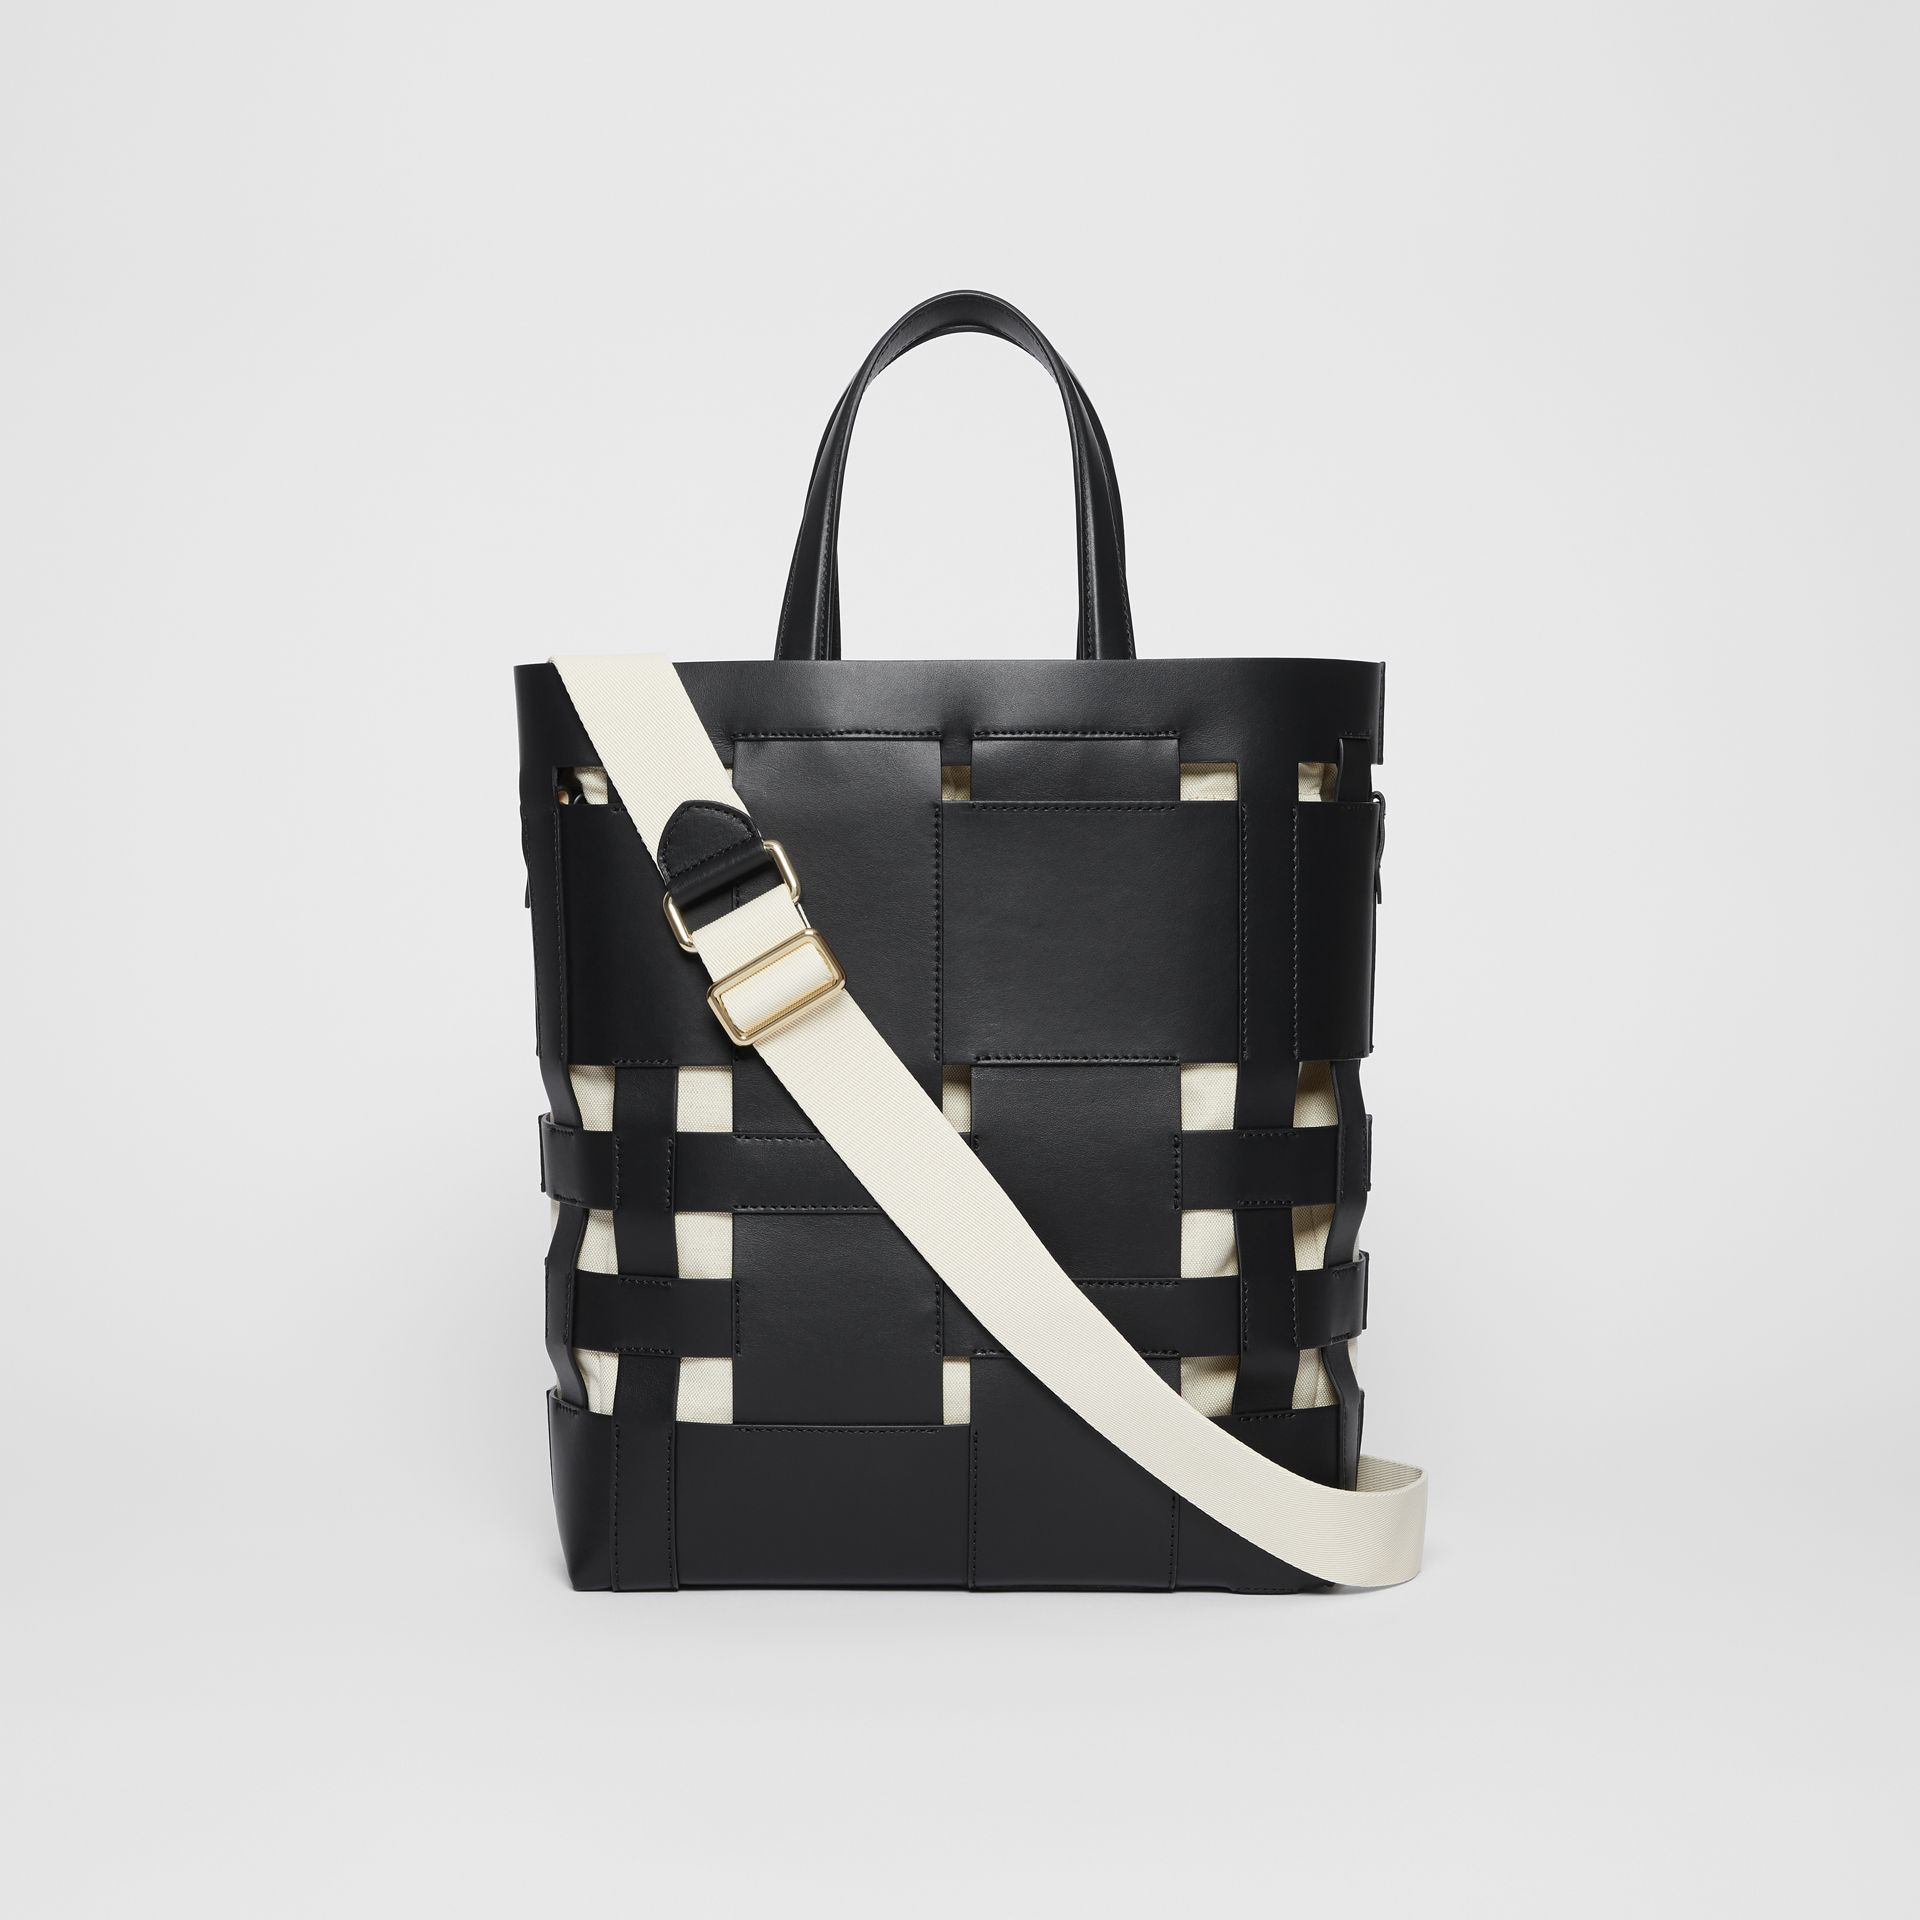 Medium Leather Foster Tote in Black - Women | Burberry - gallery image 5